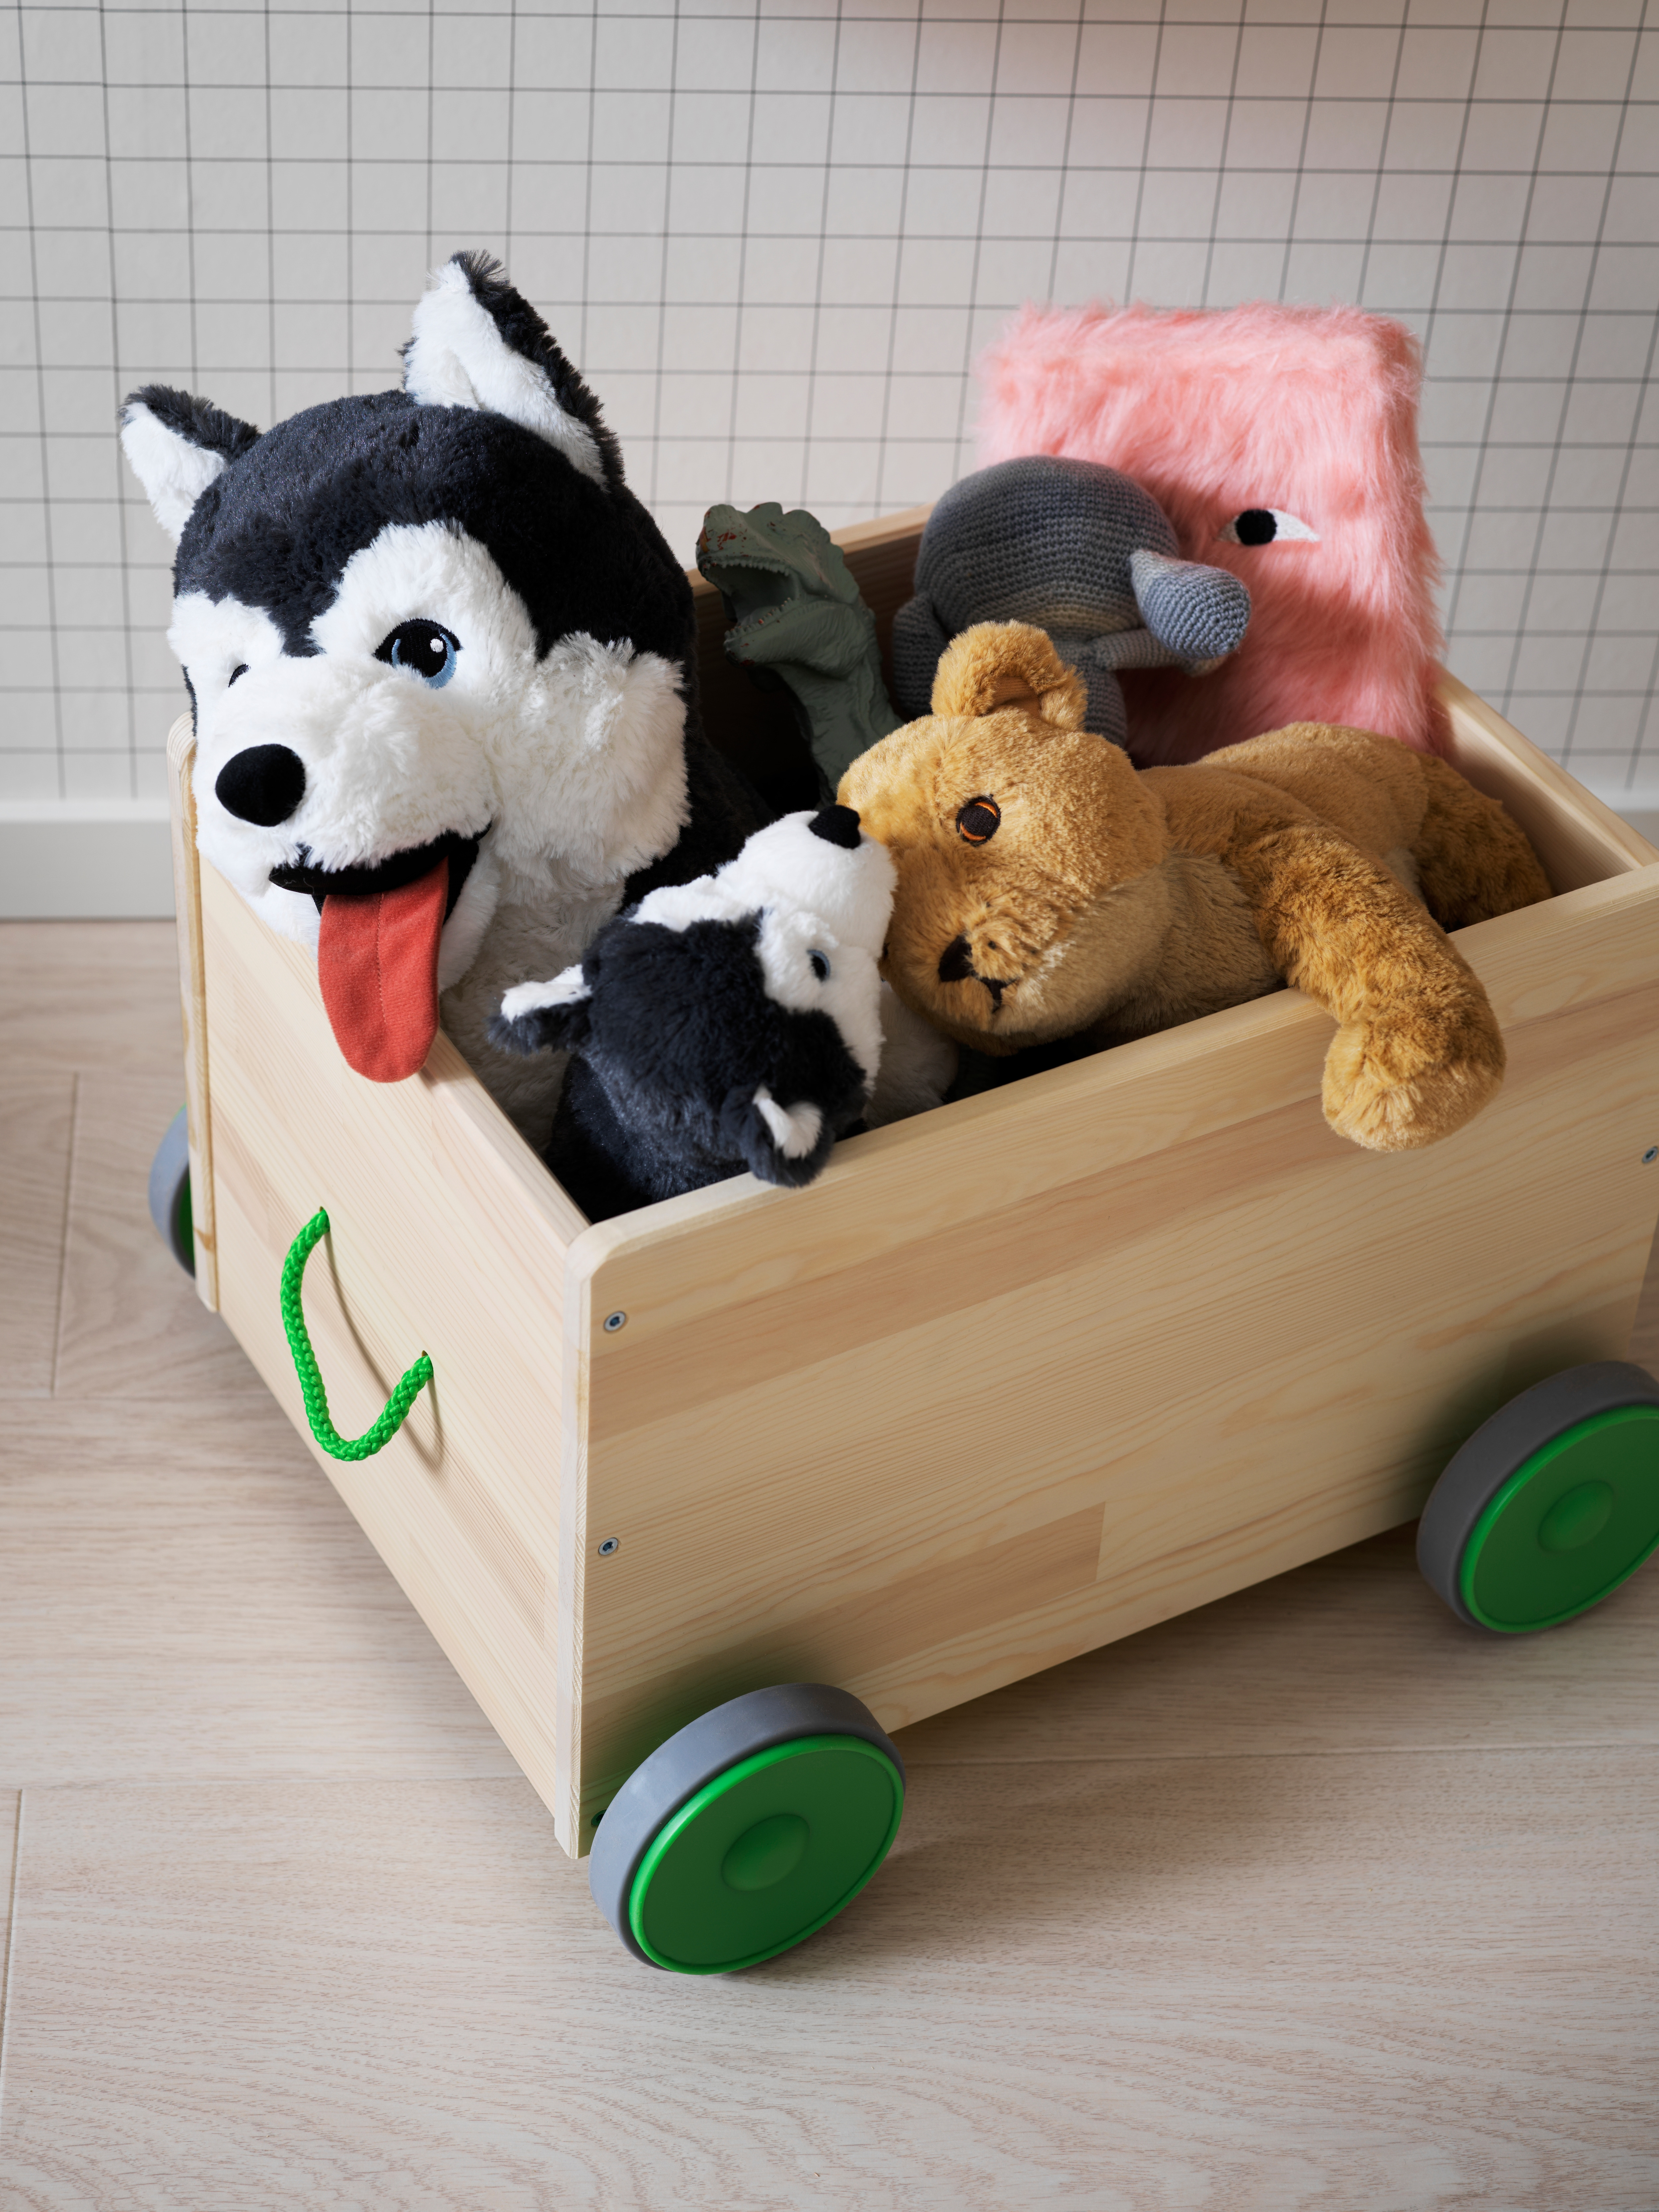 Toy storage box with four green wheels and green fabric handle, with three stuffed animal soft toys inside.